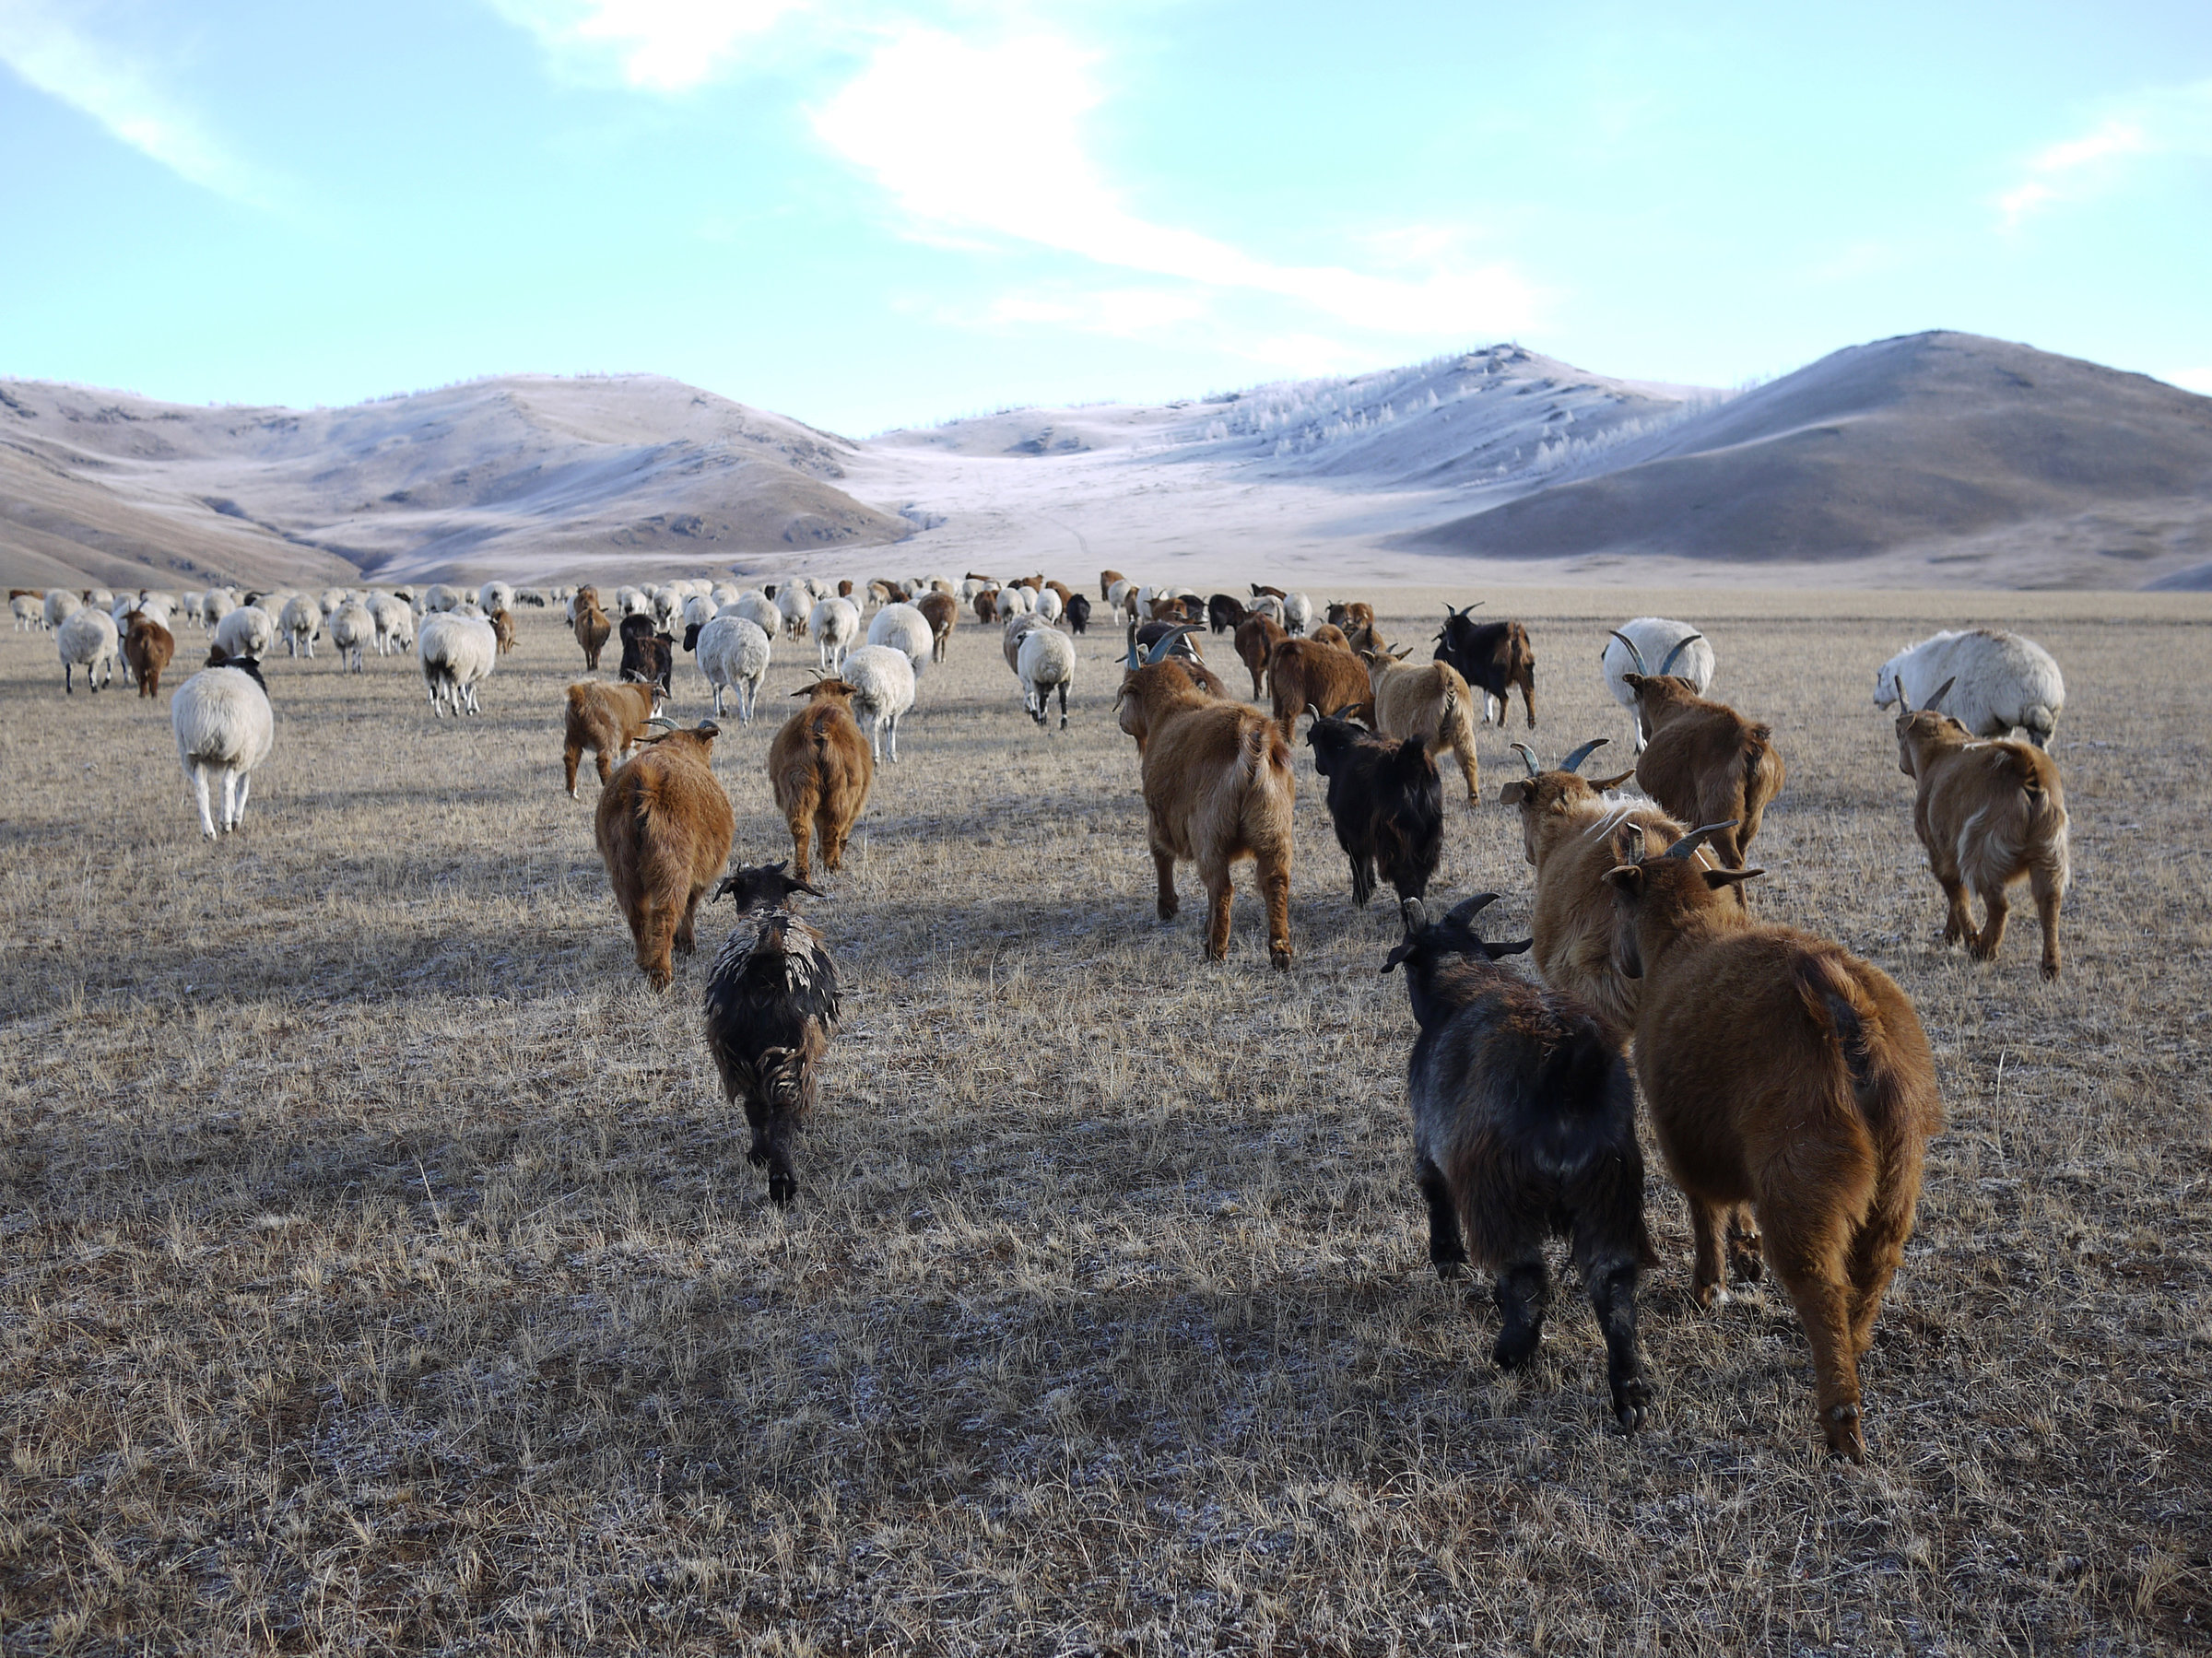 Lkhagvajav Bish's herd of cashmere goats feed on the winter grass in a valley in northeastern Mongolia. The goats' sharp hooves cut through the soil surface, and their eating habits – voraciously ripping up plants by their roots – prevents the grassland from thriving.   Rob Schmitz/NPR